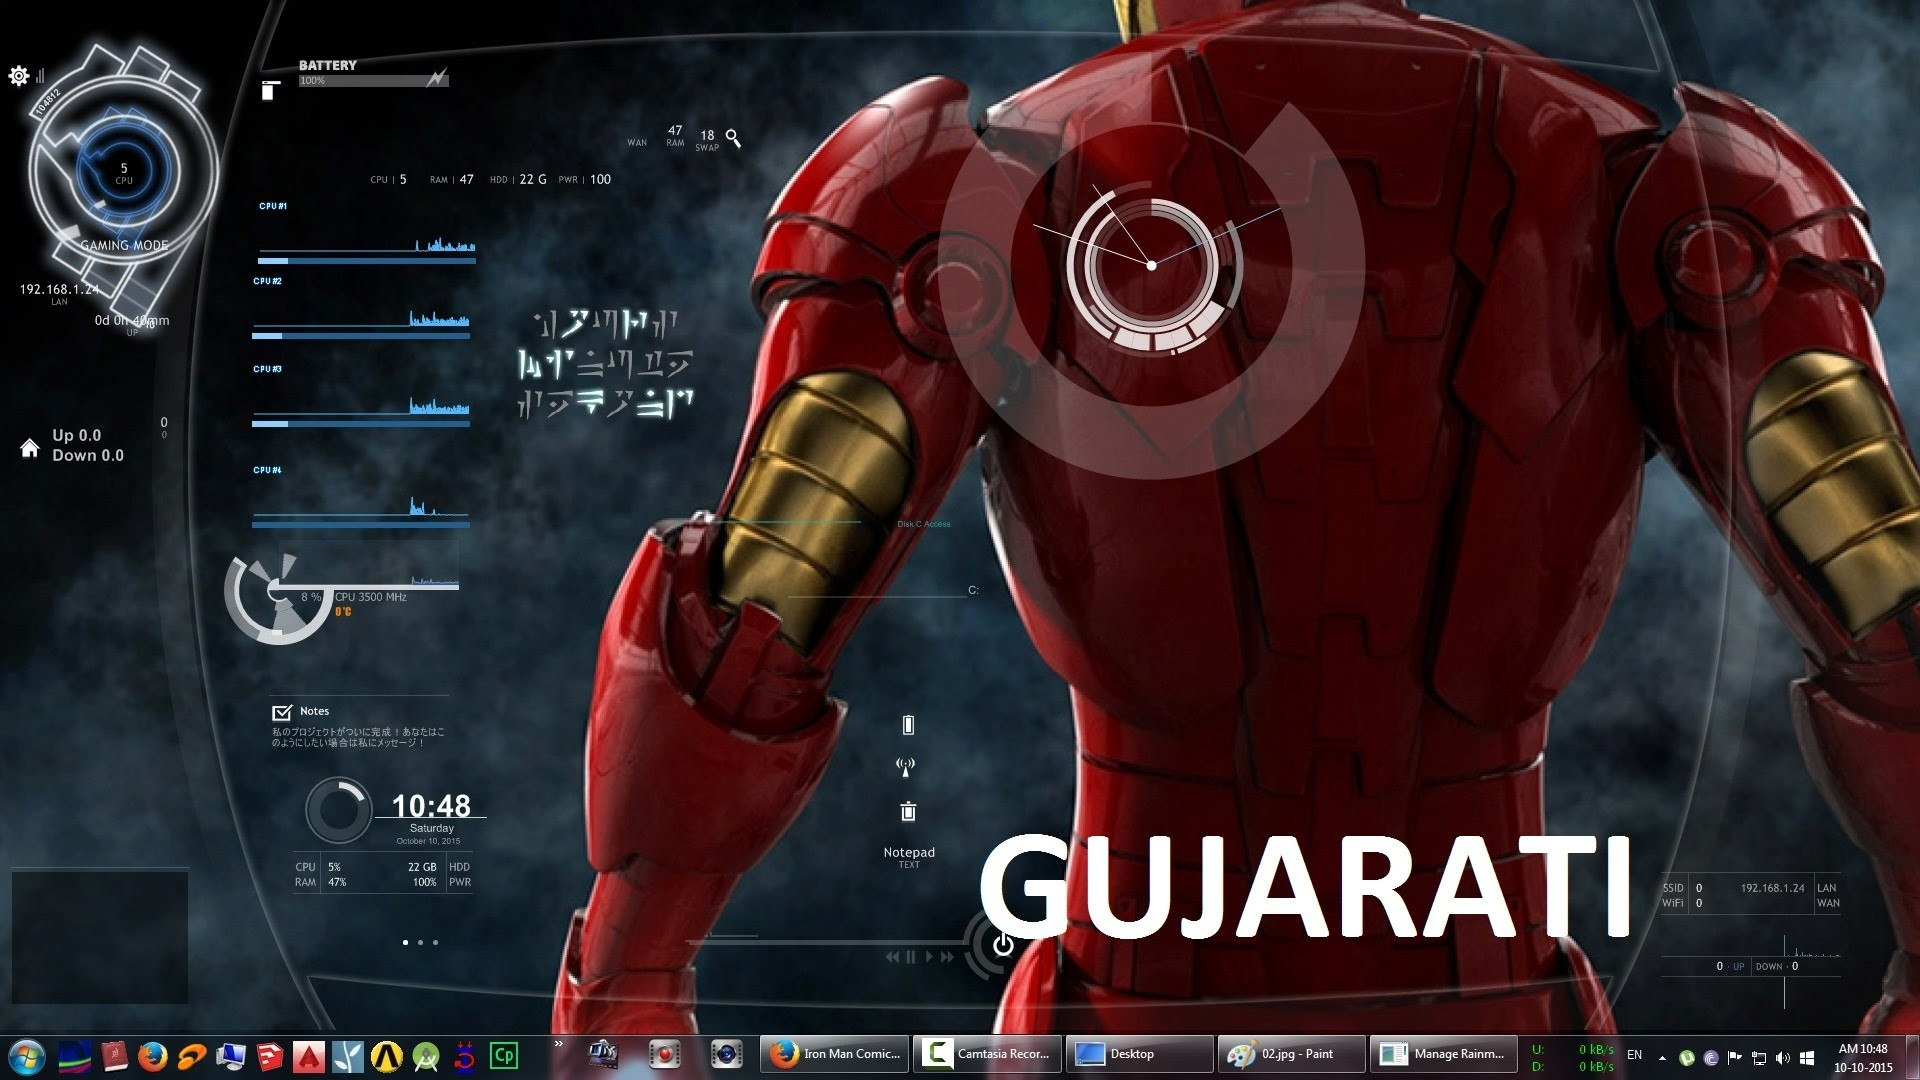 1080x1920 Live Wallpaper Featuring An Animated 3D MODEL Of IRON MAN A TALKING